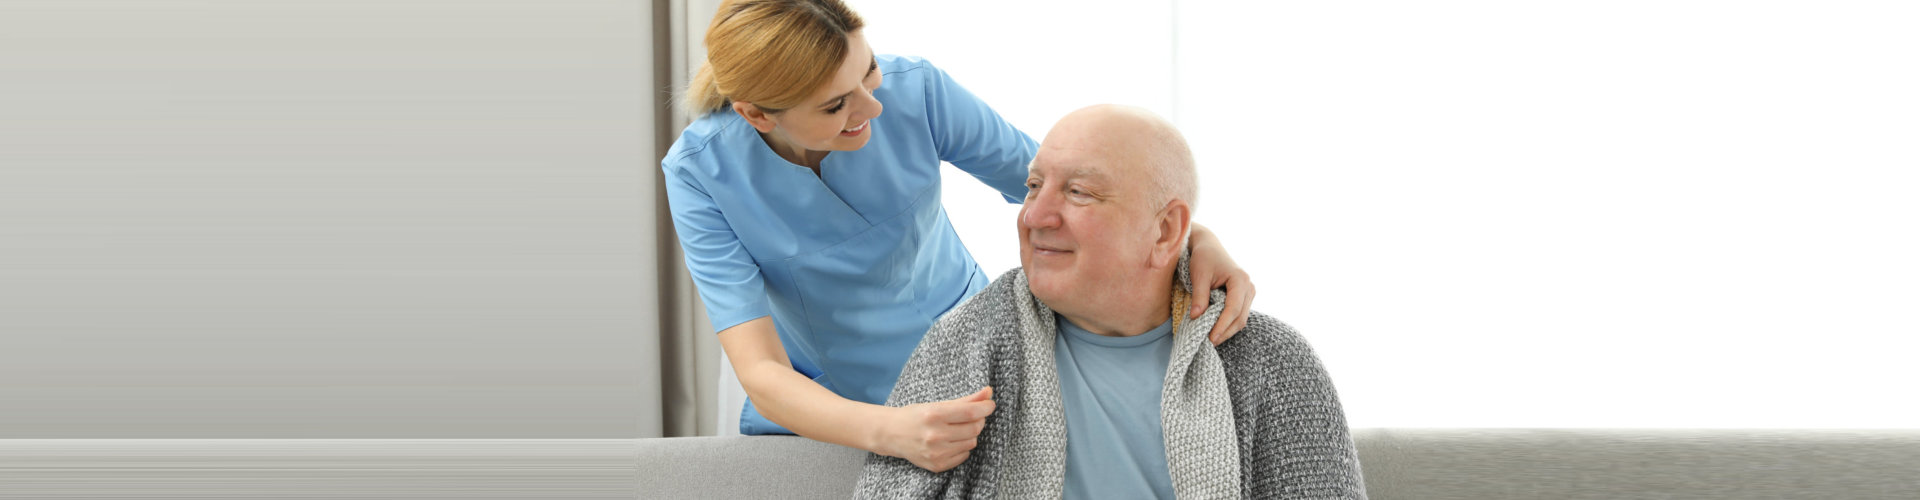 caregiver giving clothes to her patient